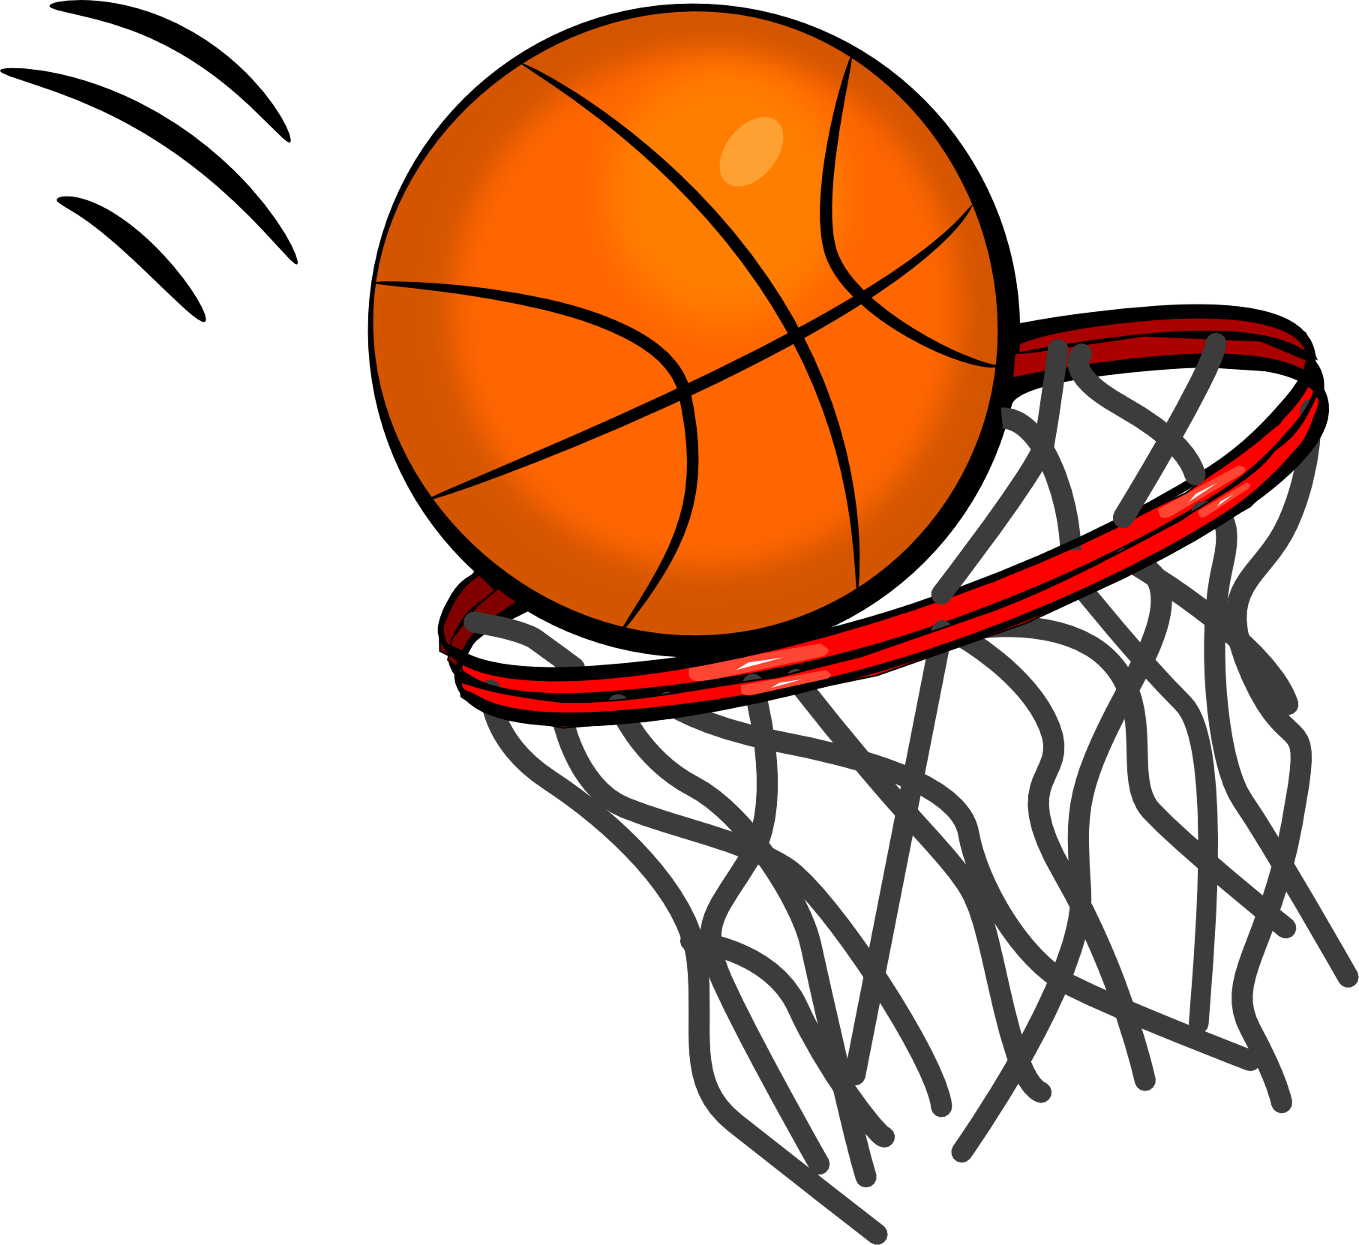 Girls Basketball Images Girl Player Clipart Free Clip Art Images